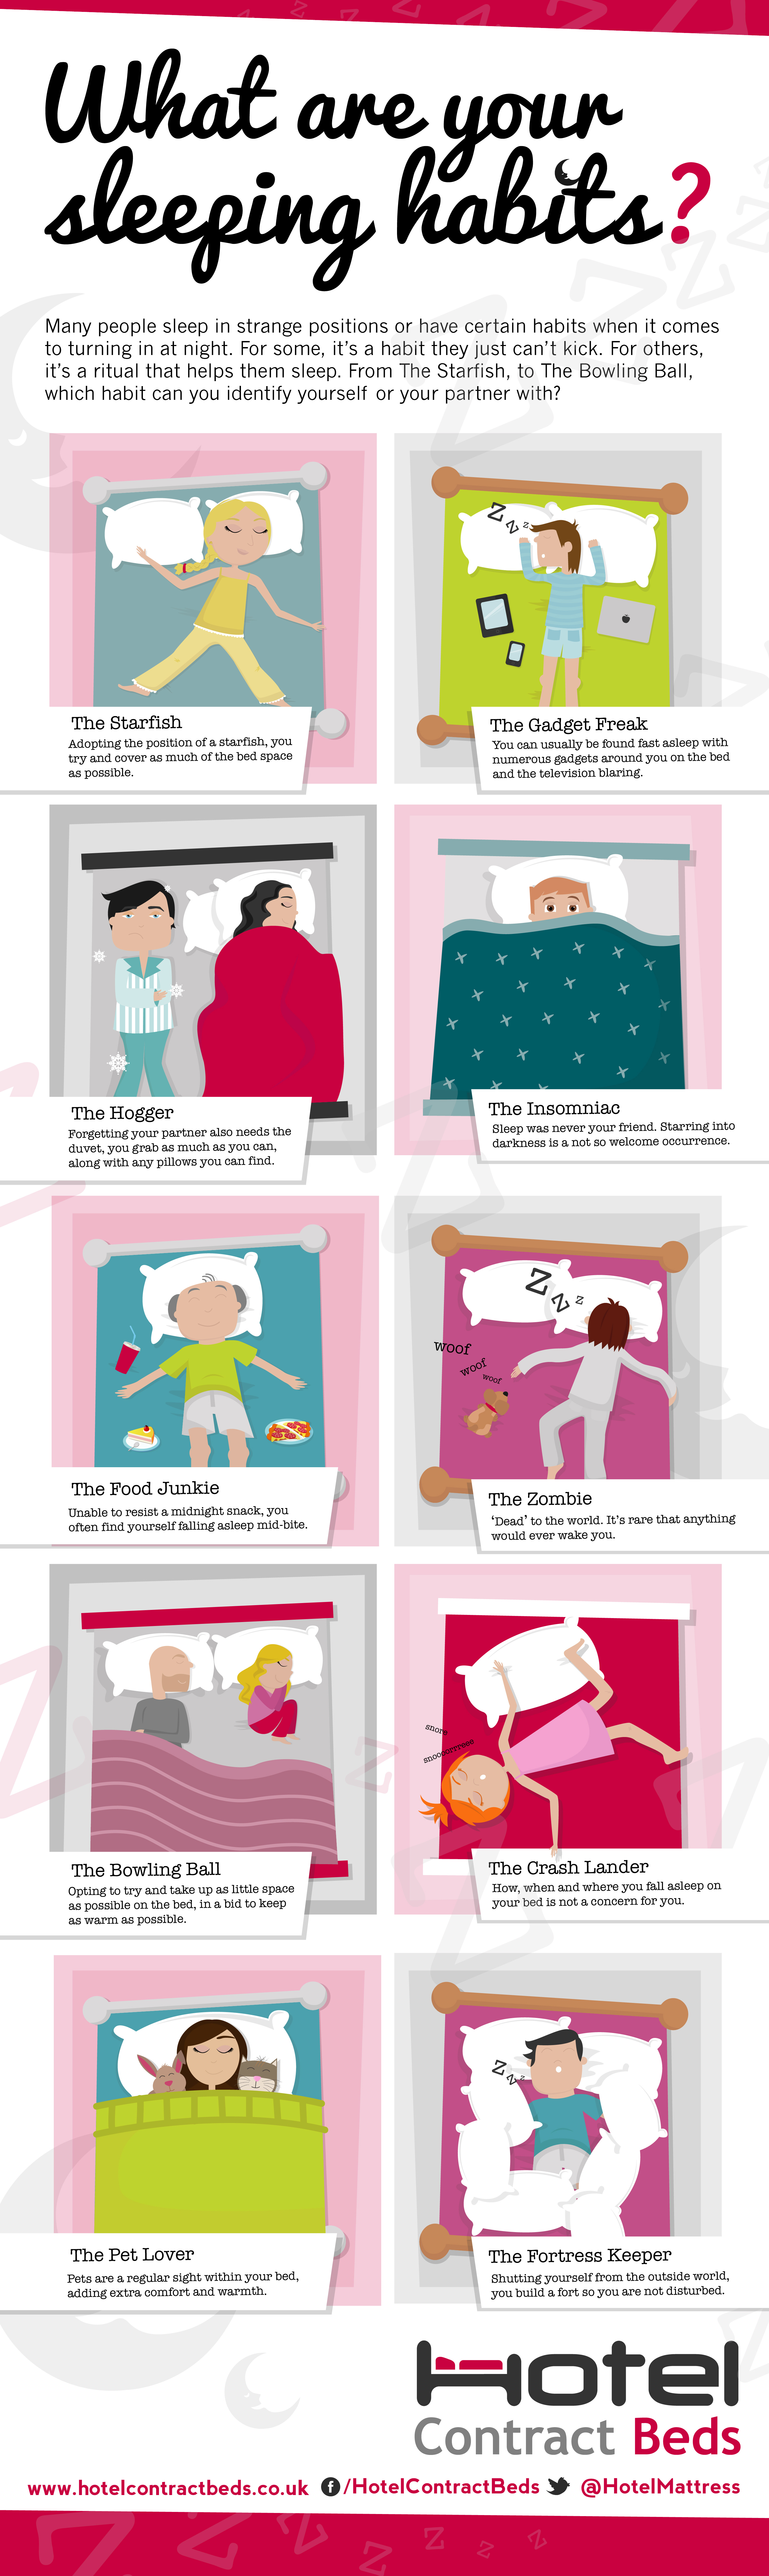 Infographic: What Are Your Sleeping Habits?